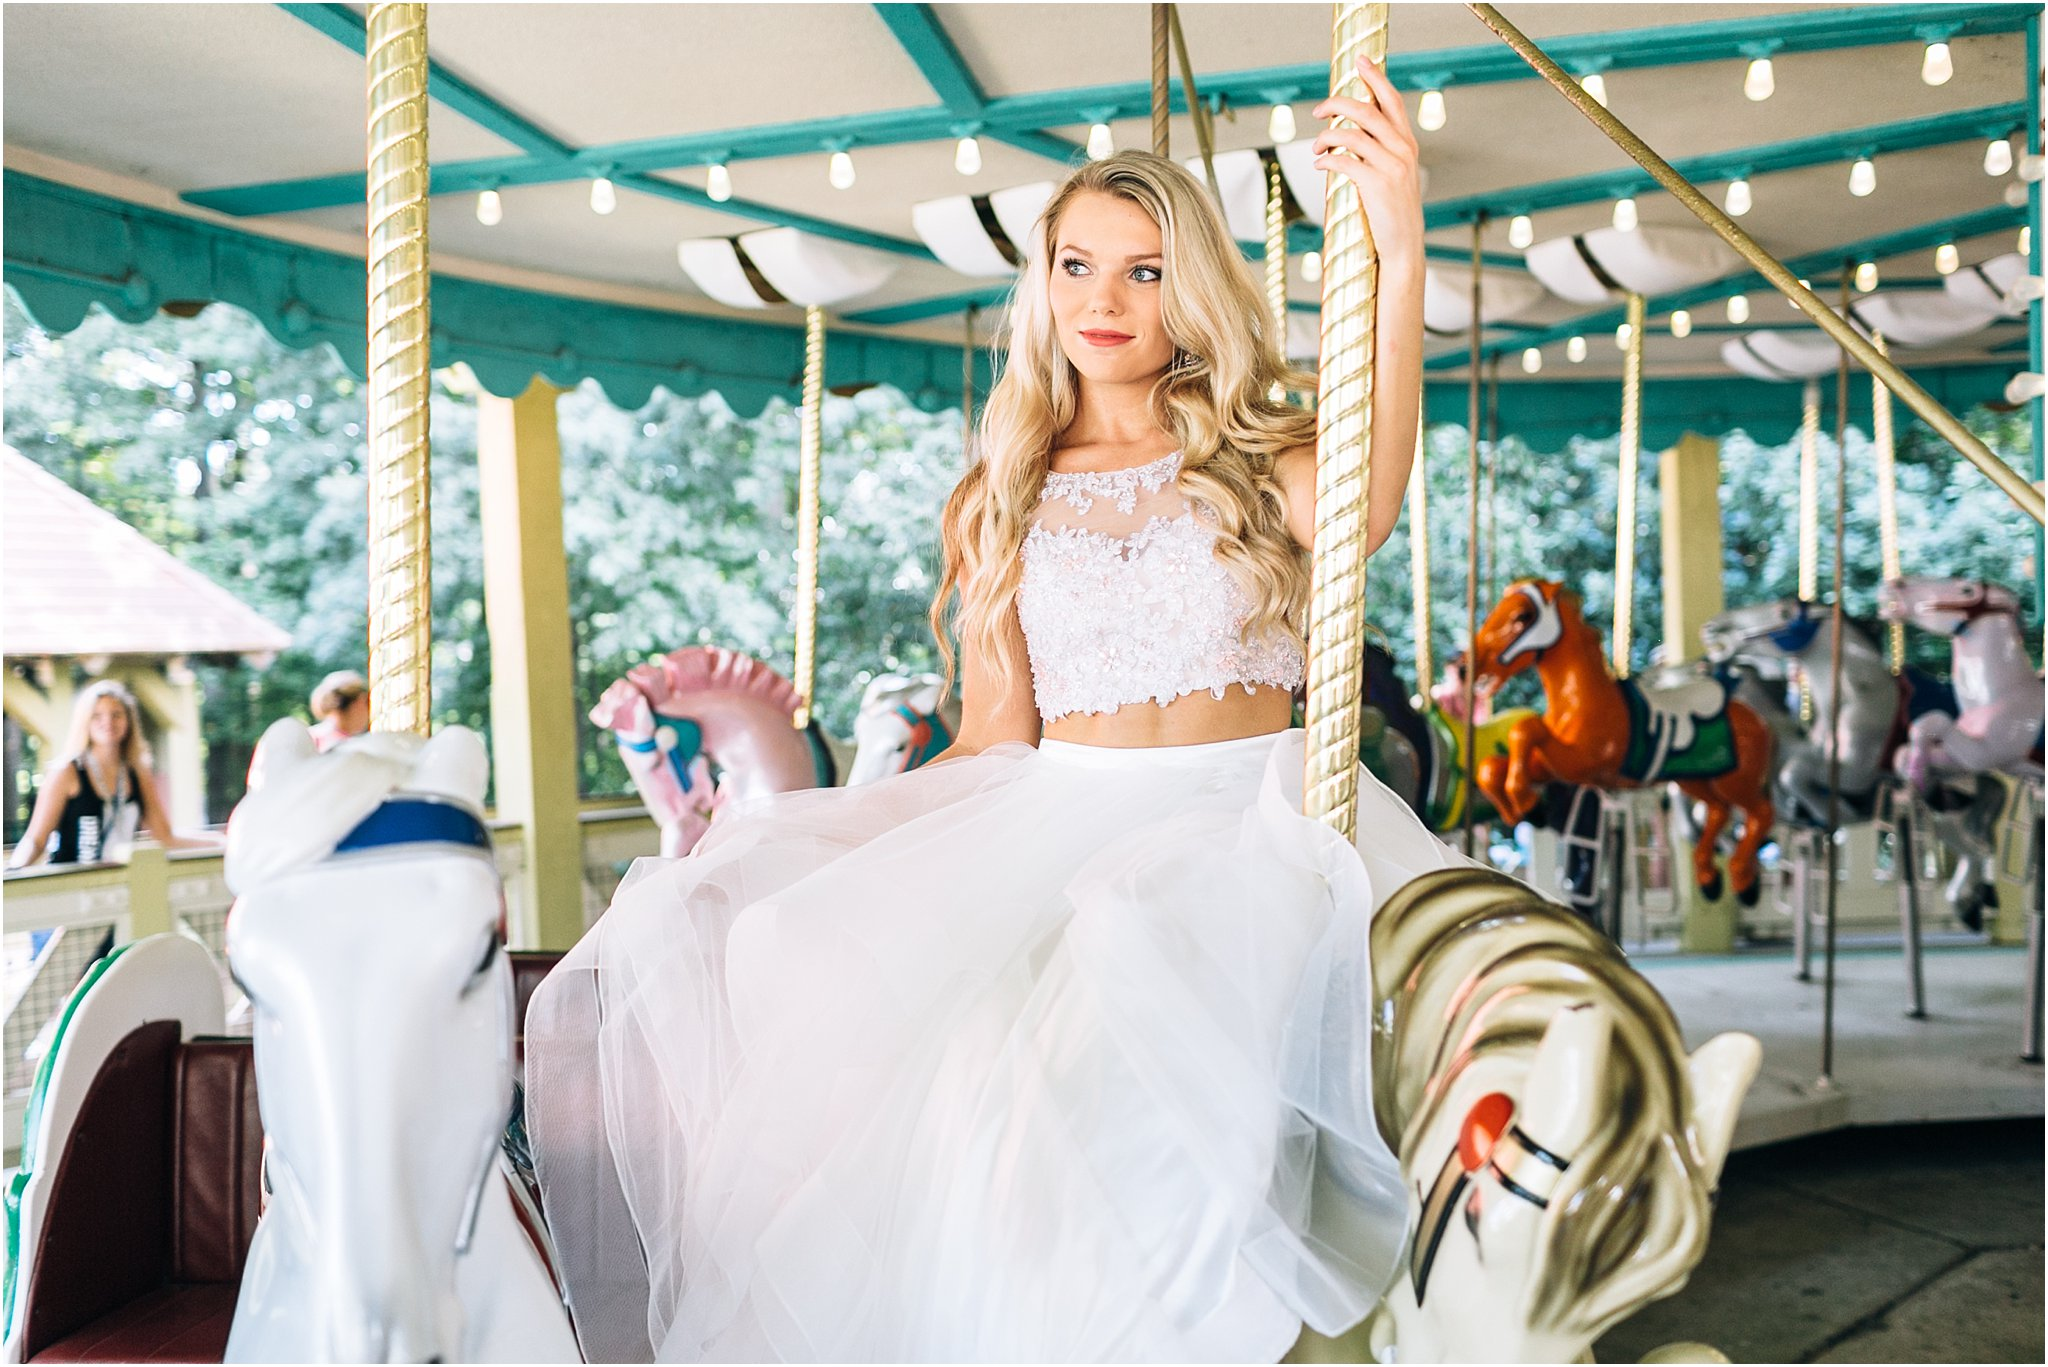 jessica_ryan_photography_busch_gardens_williamsburg_virginia_photographer_formal_dresses_portraits_fun_vibrant_portraits_faviana_designer_sherri_hill_designer_3159